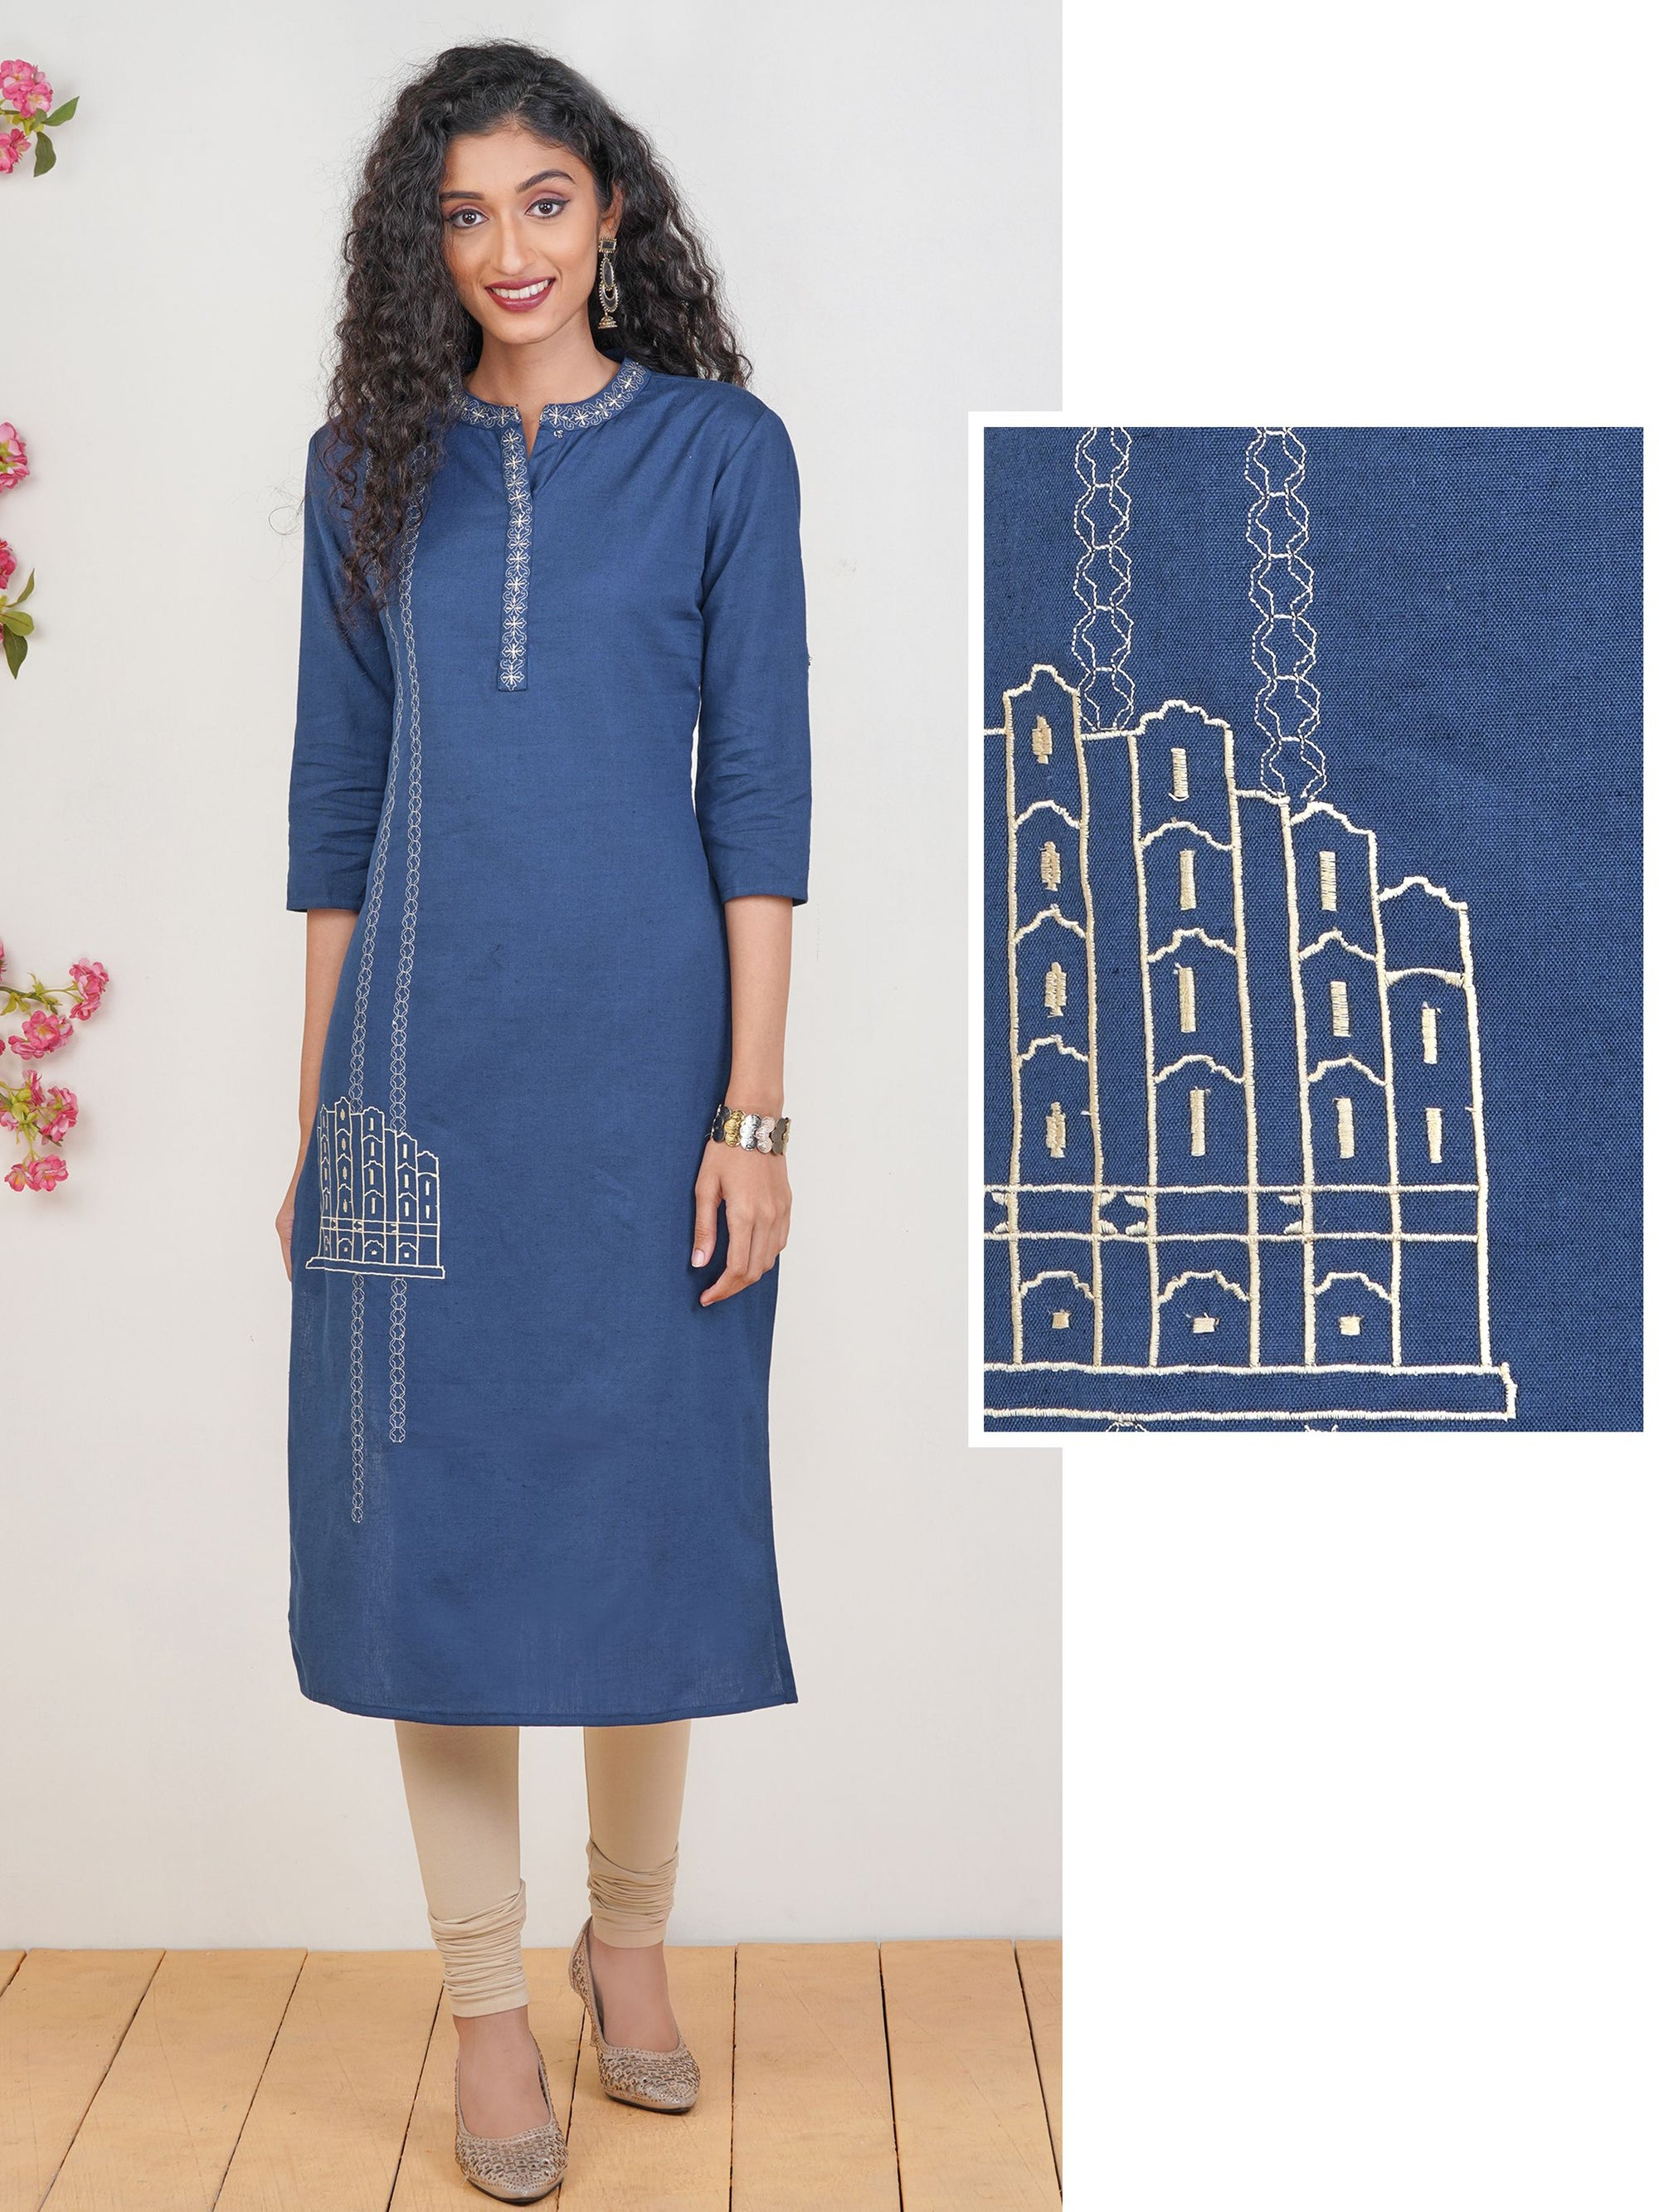 Minimal Embroidered Cotton Kurti – Teal Blue